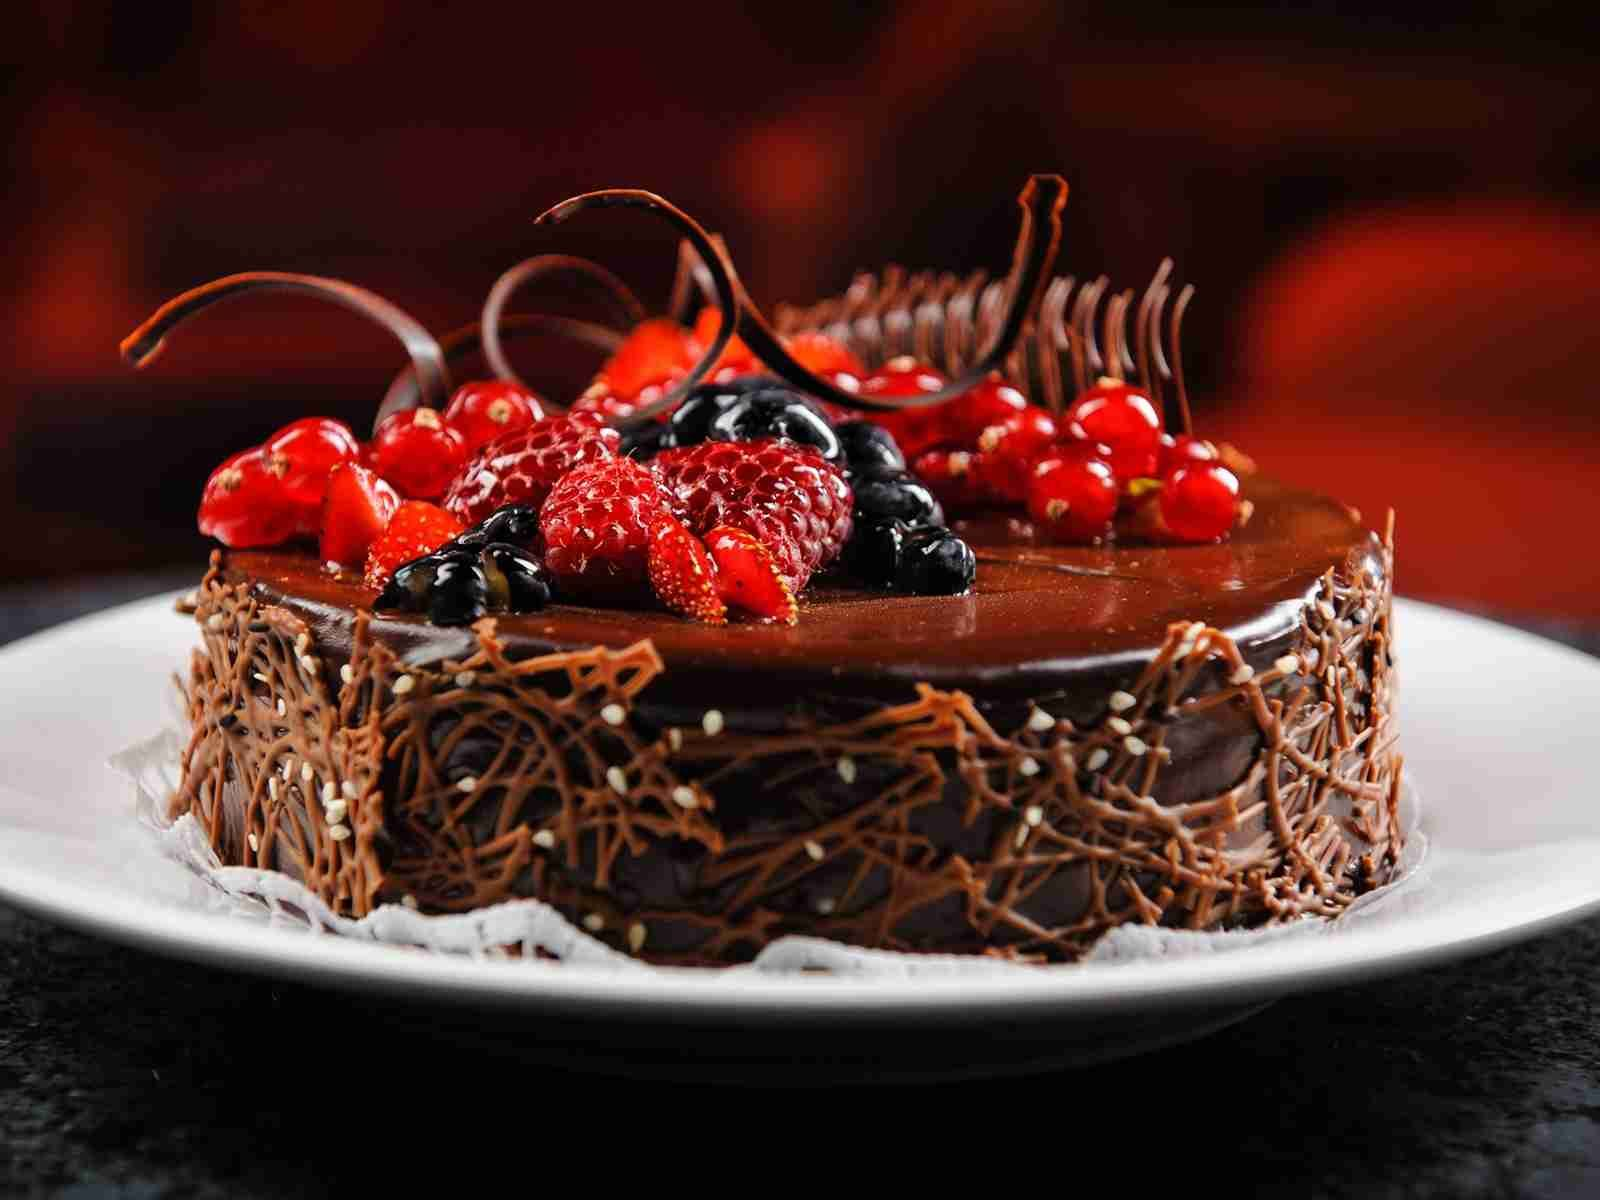 Birthday chocolate fruit cake pic more on httphbdwishcom